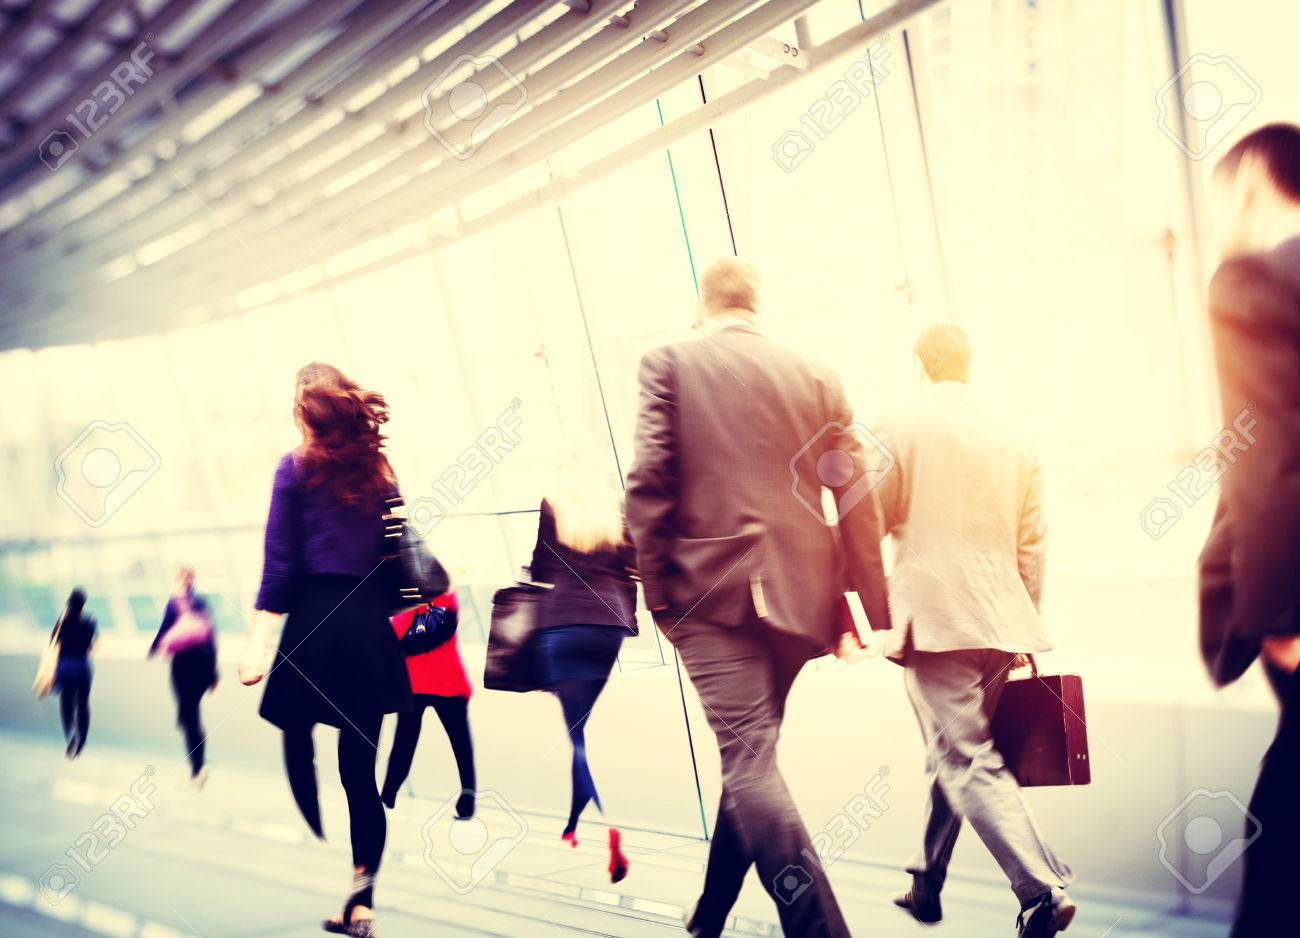 Business People Walking Commuter Travel Motion City Concept Stock Photo - 38521264